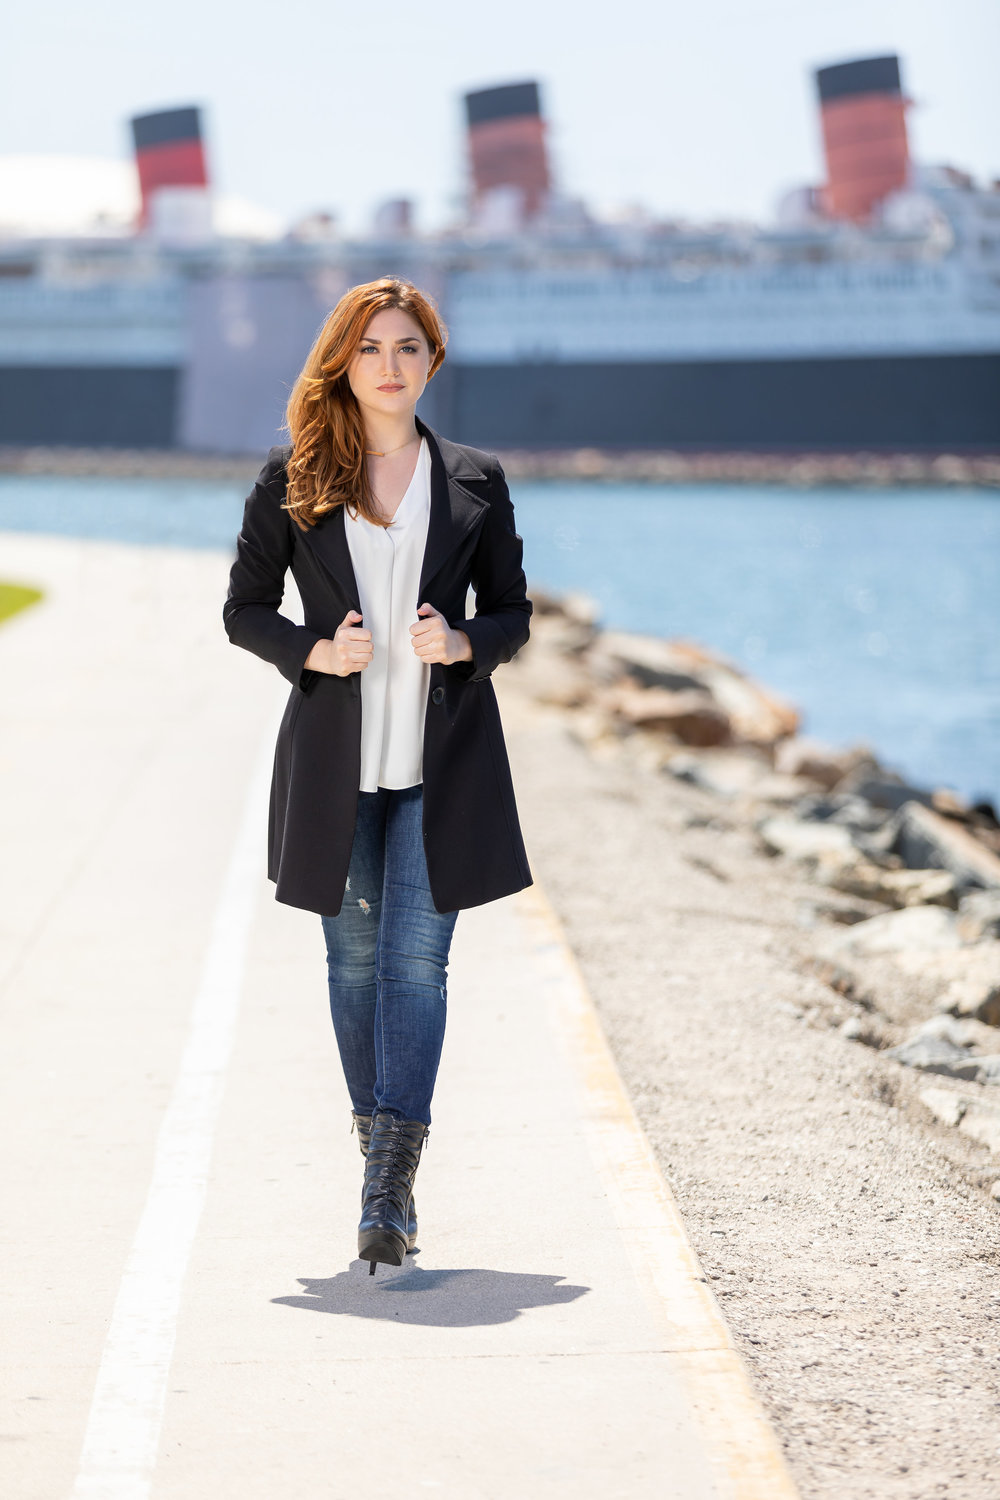 High Fashion woman walking along the harbor in a long black jacket jeans and heeled boots.jpg